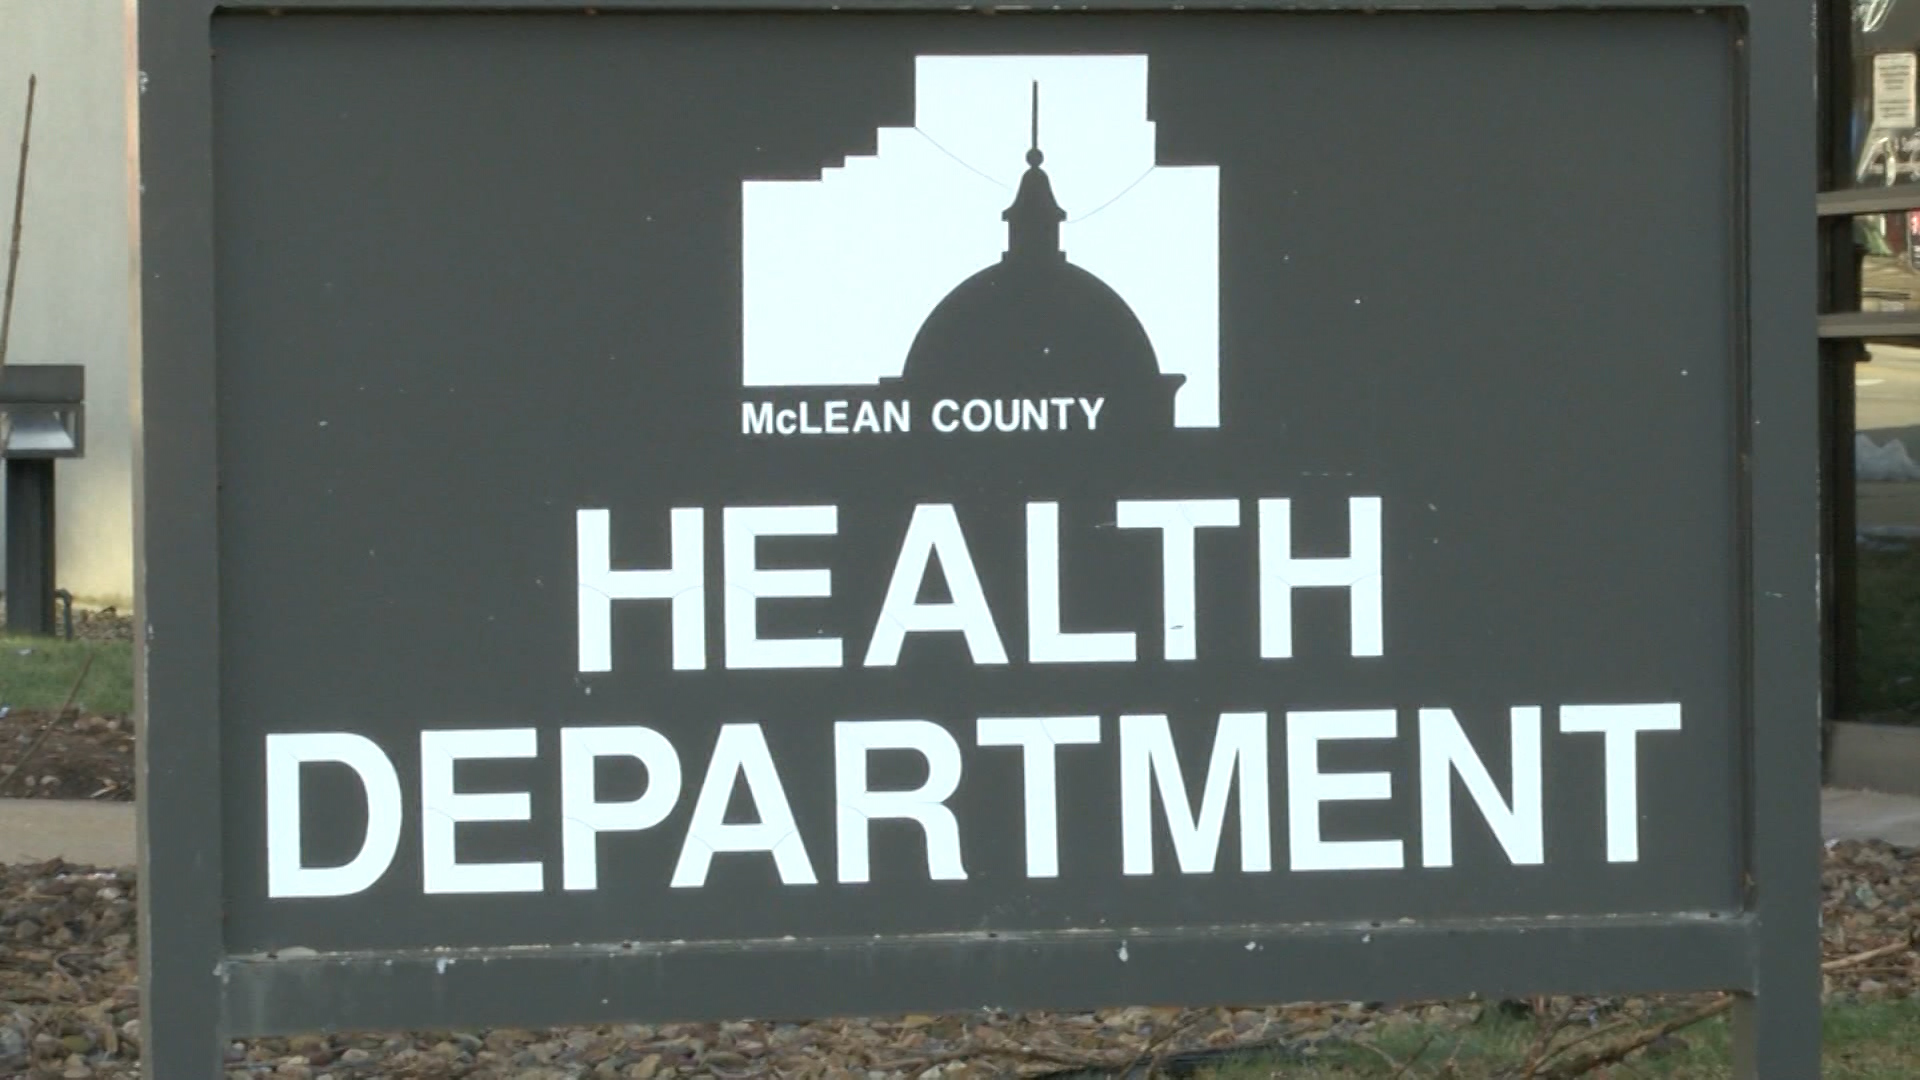 MCLEAN COUNTY HEALTH DEPT_1496799187942.jpg